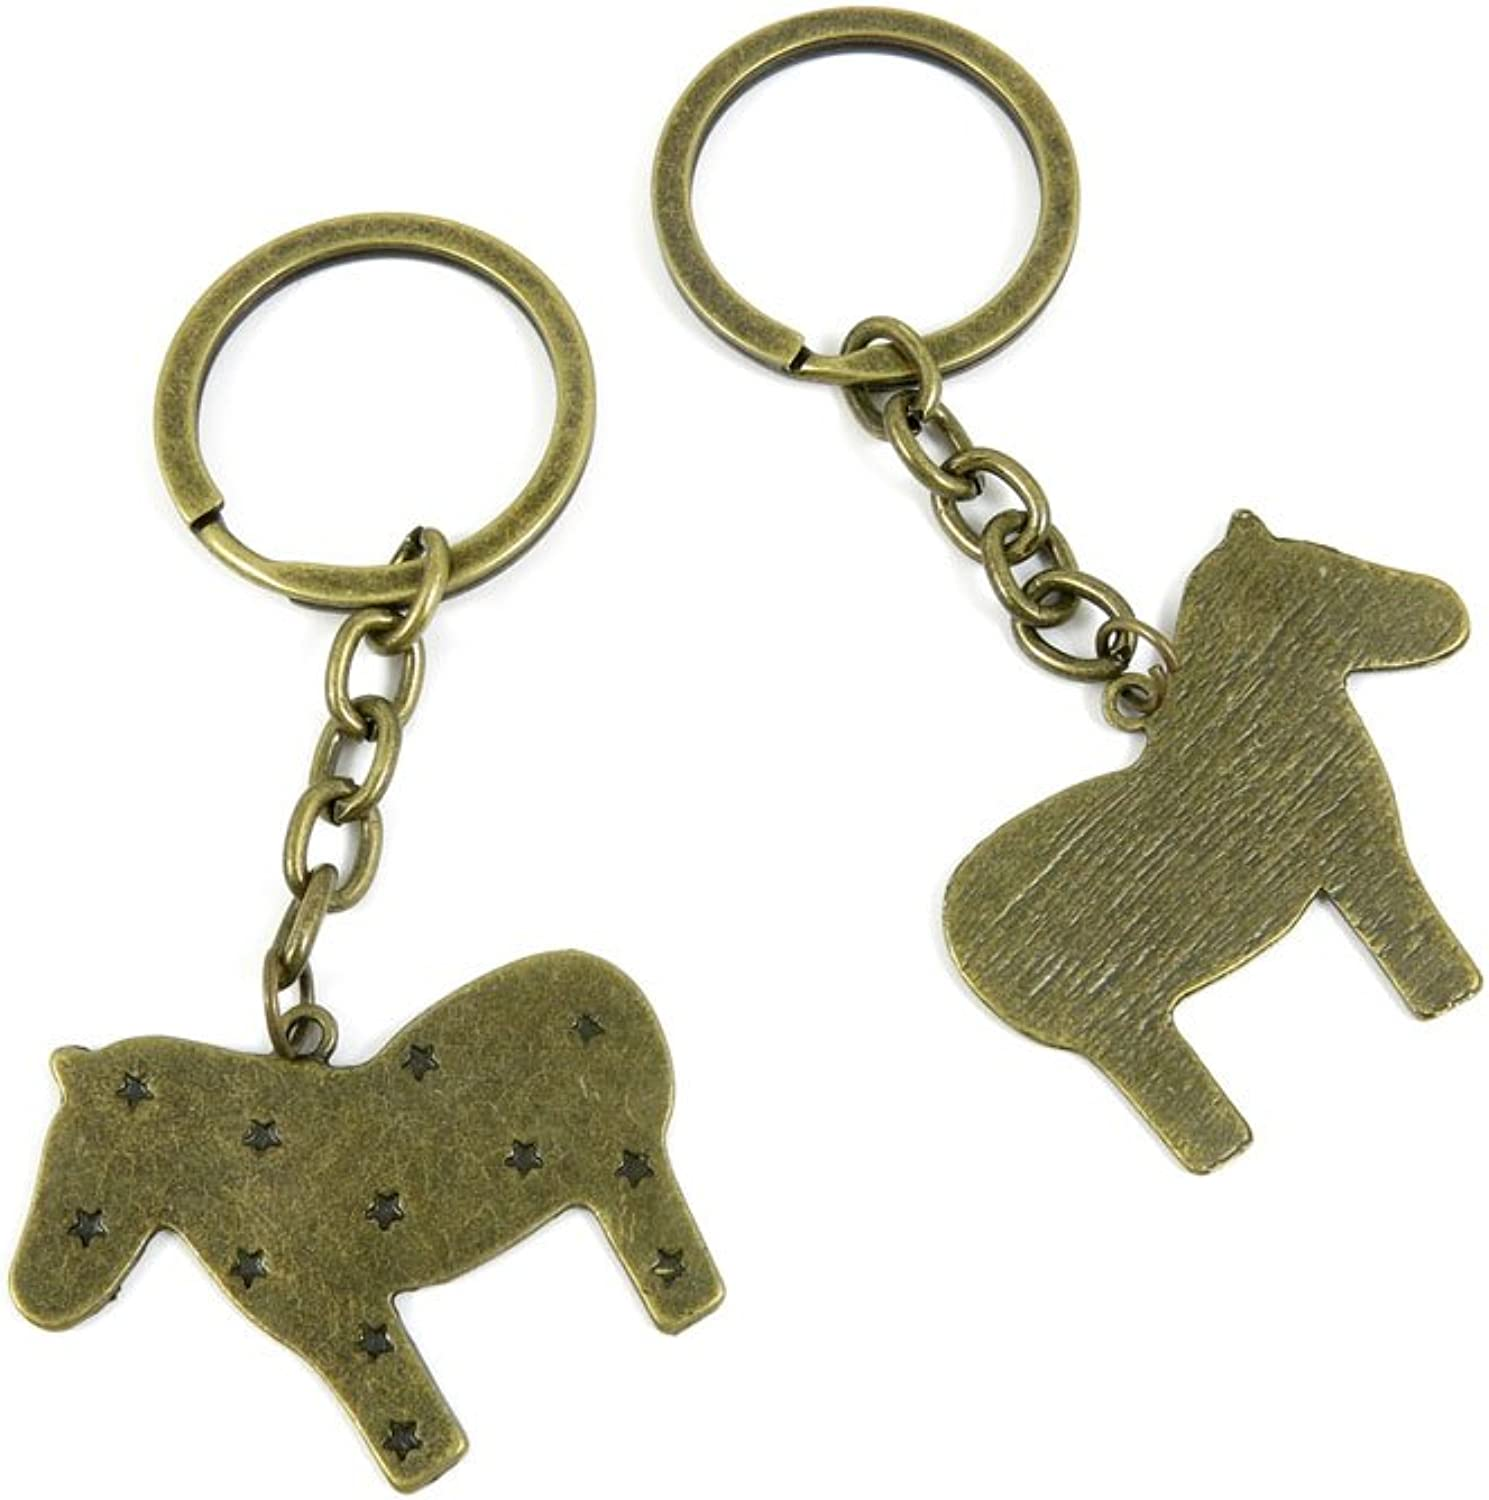 100 PCS Keyrings Keychains Key Ring Chains Tags Jewelry Findings Clasps Buckles Supplies K7YI3 Star Pony Horse